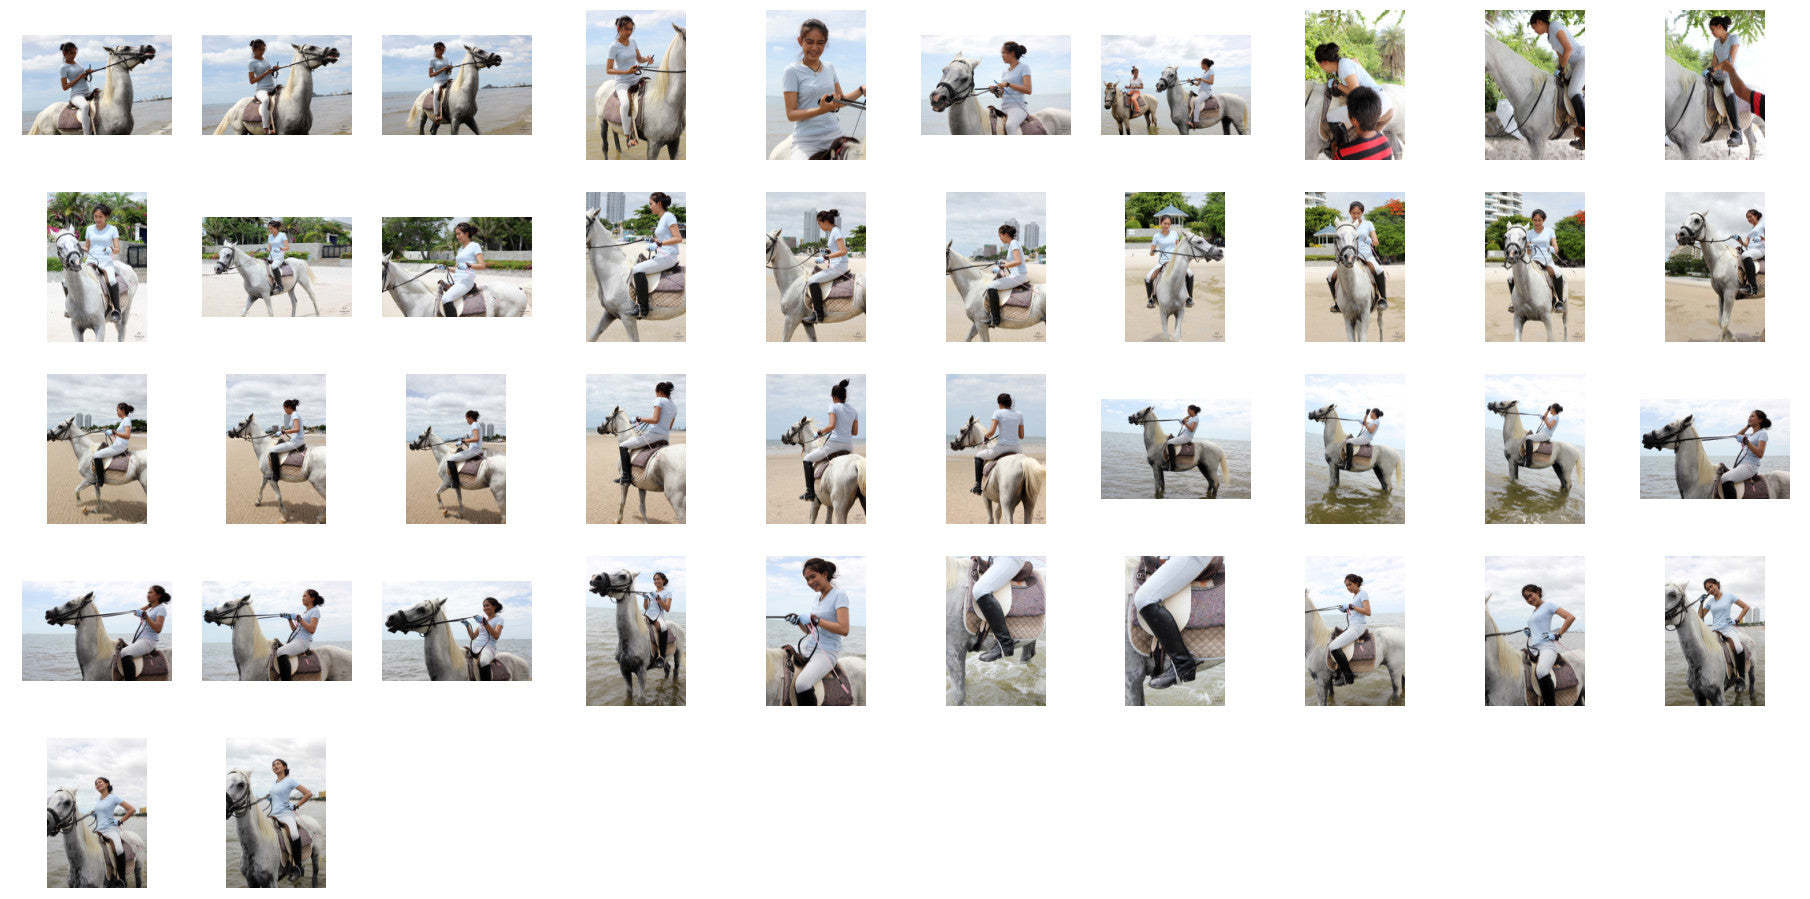 Som in Jodhpurs Riding with Saddle on White Arabian Horse, Part 4 - Riding.Vision